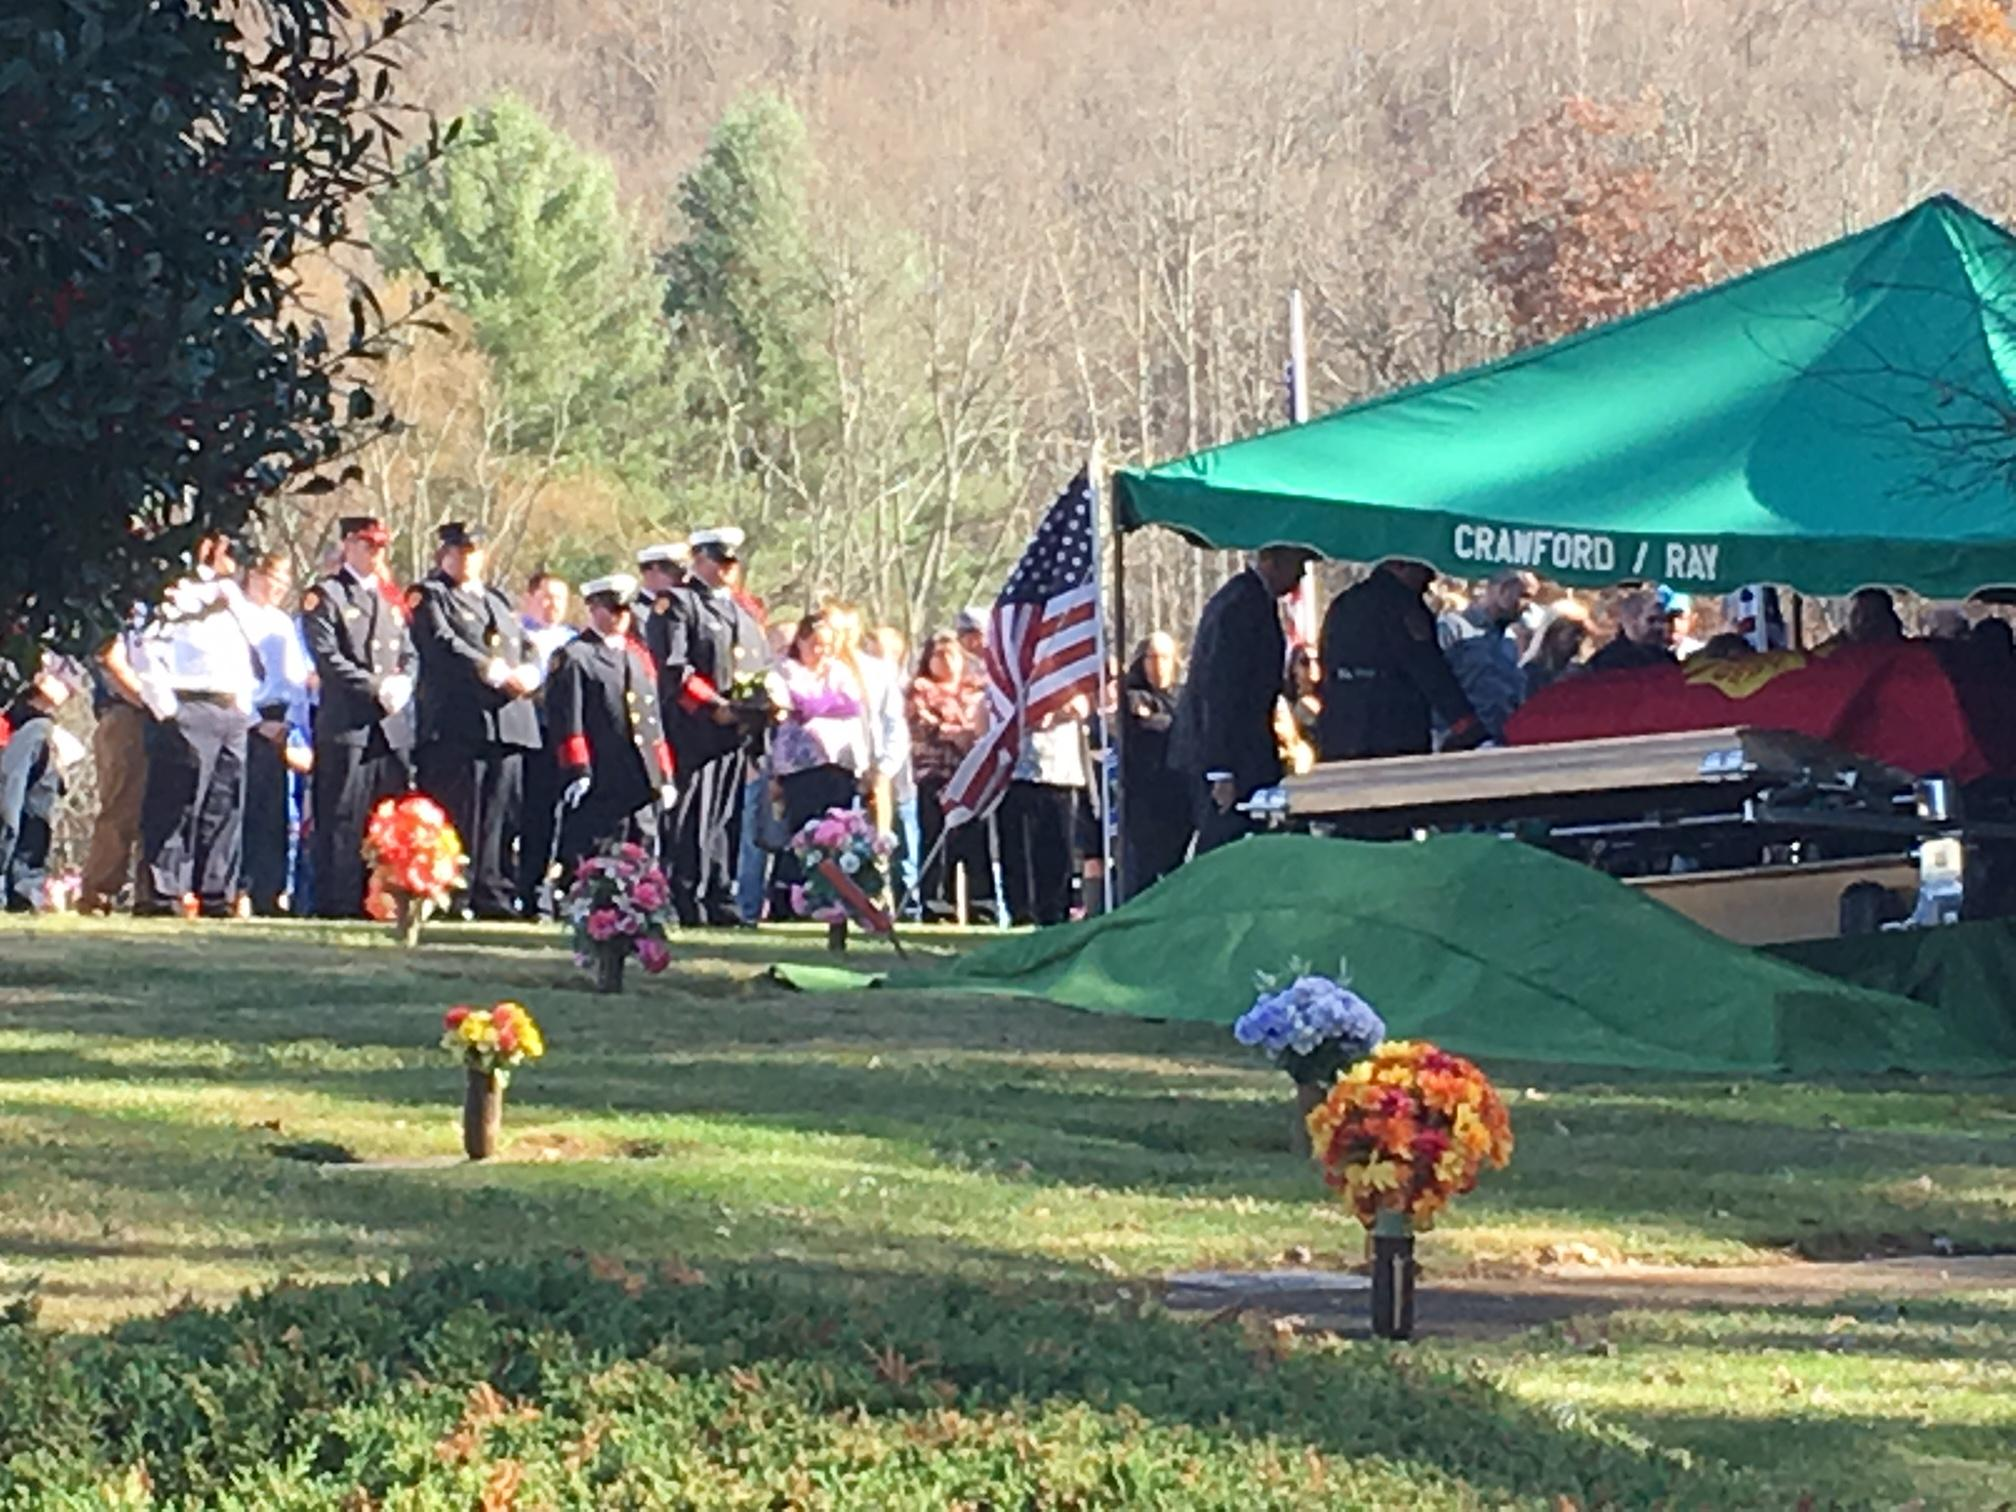 Boney Summey, one of the victims in a September wagon train crash in Haywood County, was laid to rest Friday afternoon. (Photo credit: WLOS staff)